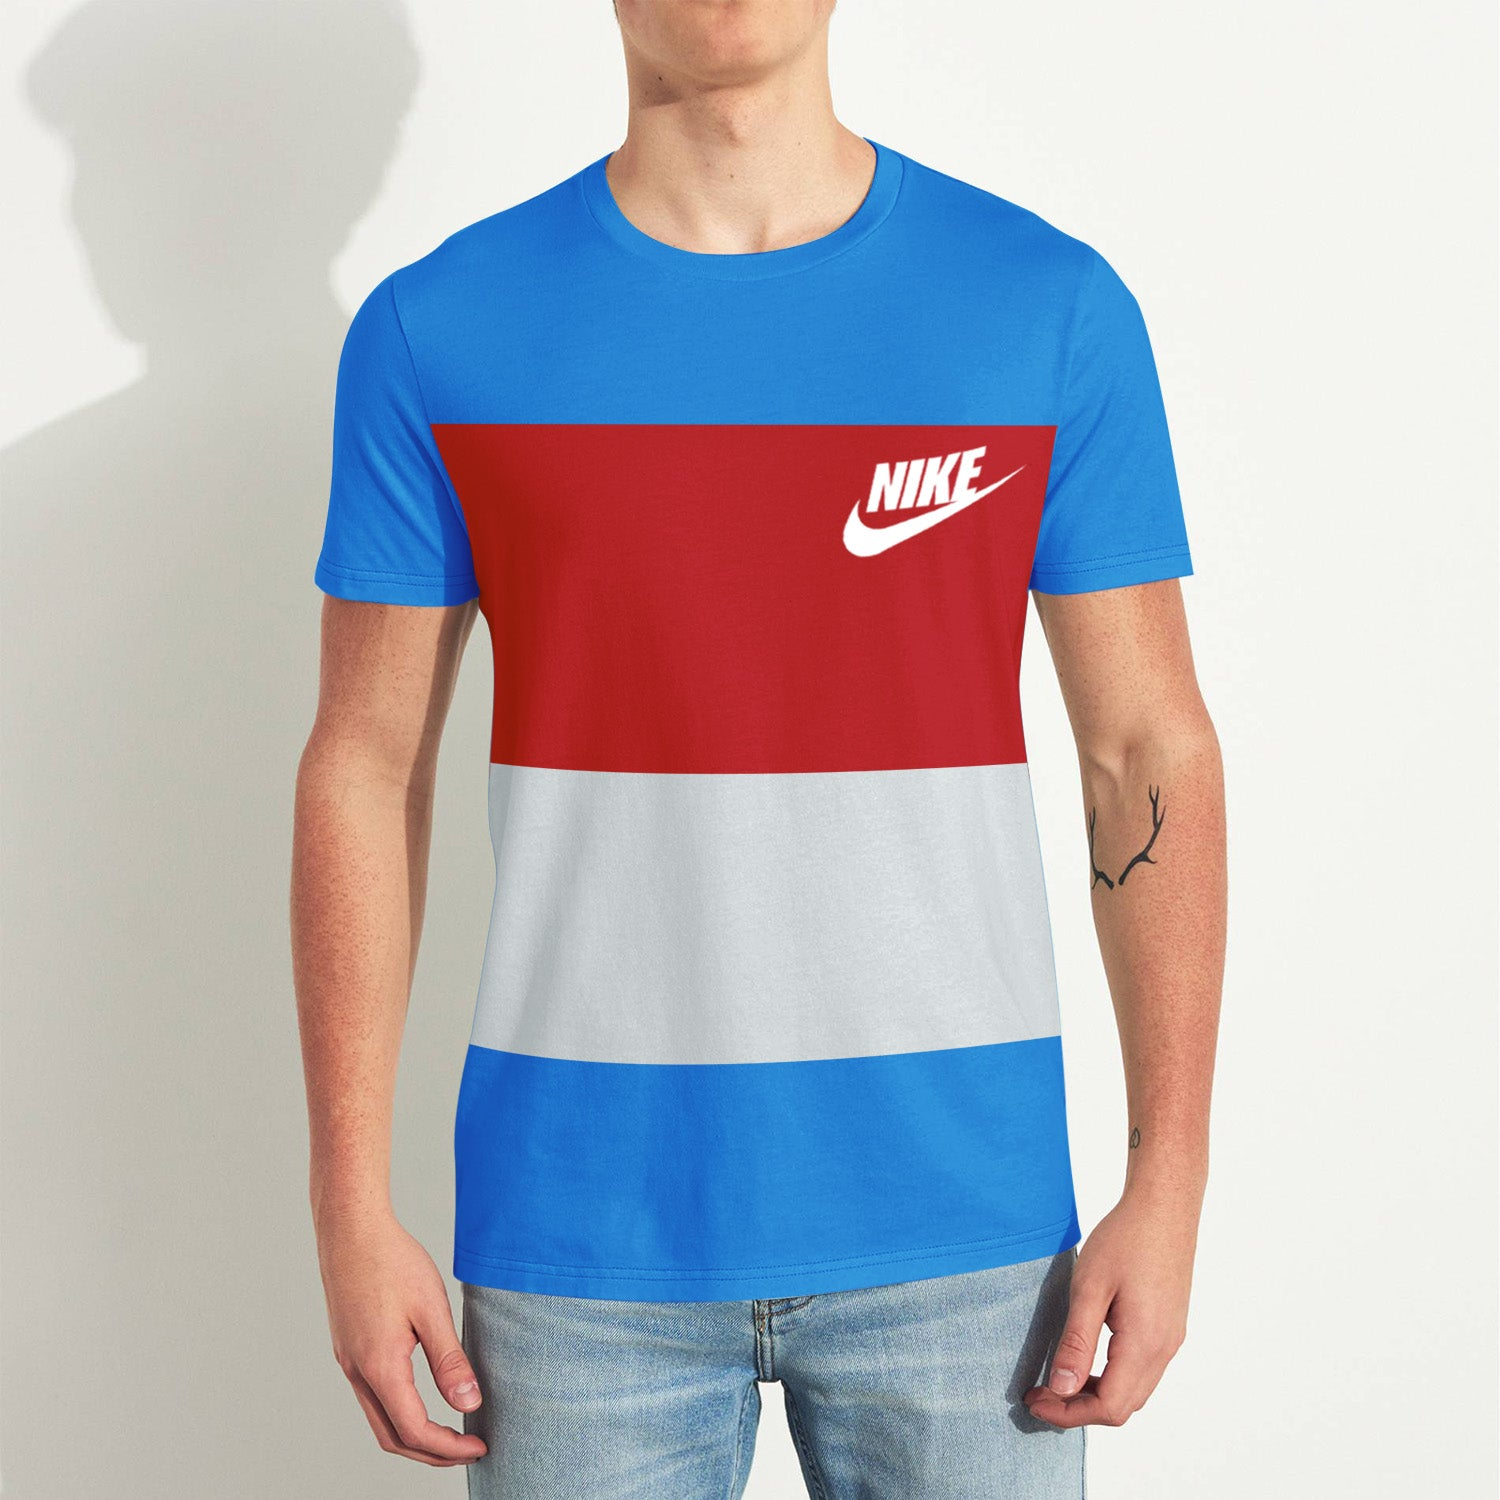 NK Crew Neck Tee Shirt For Men-Sky with Panels-BE11833